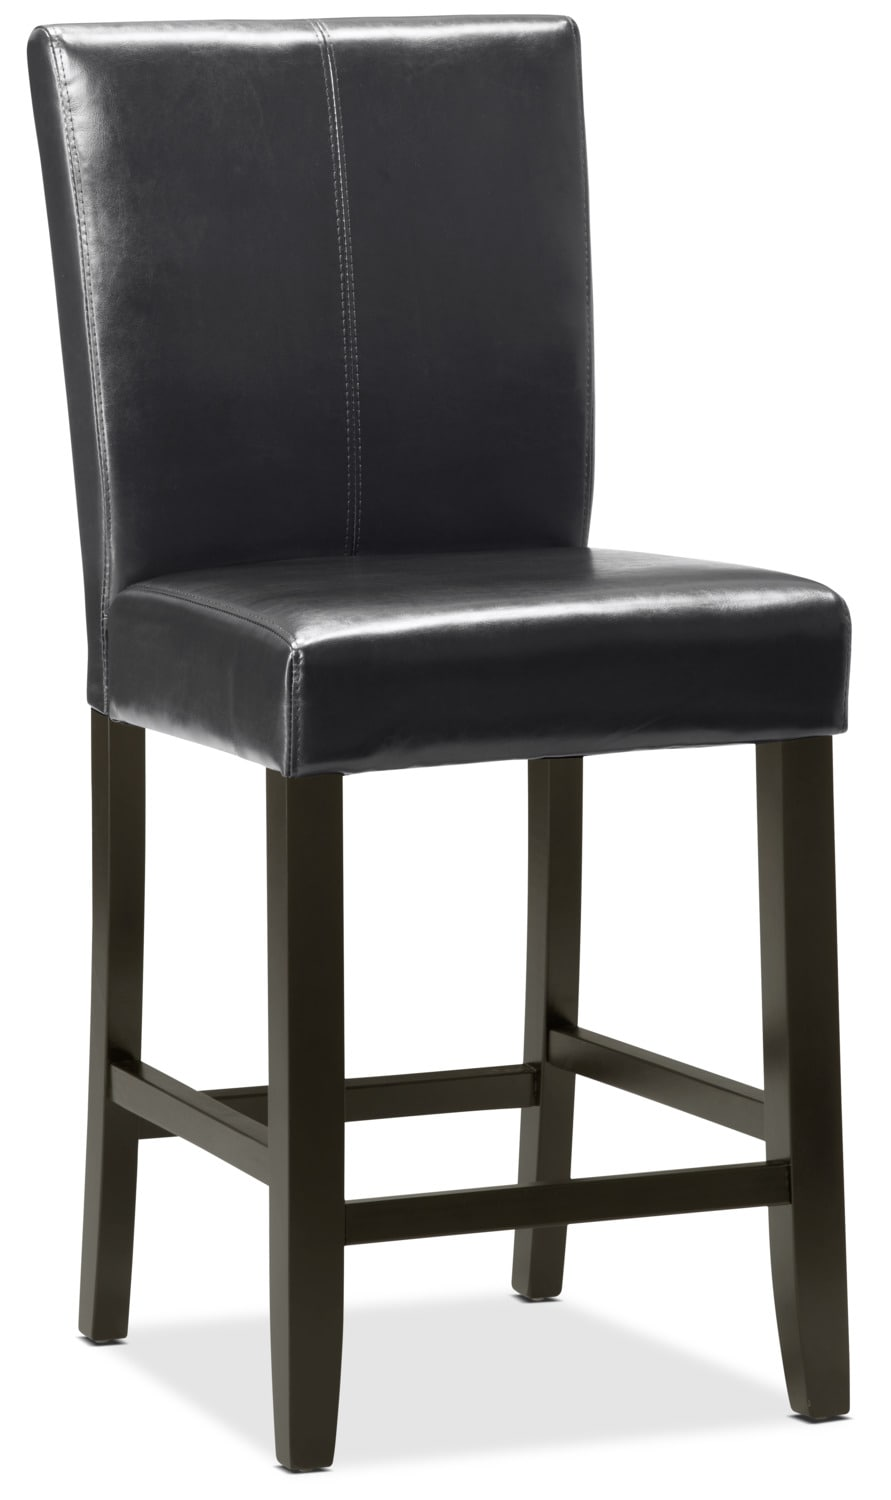 Dining Room Furniture - Black Counter-Height Dining Chair